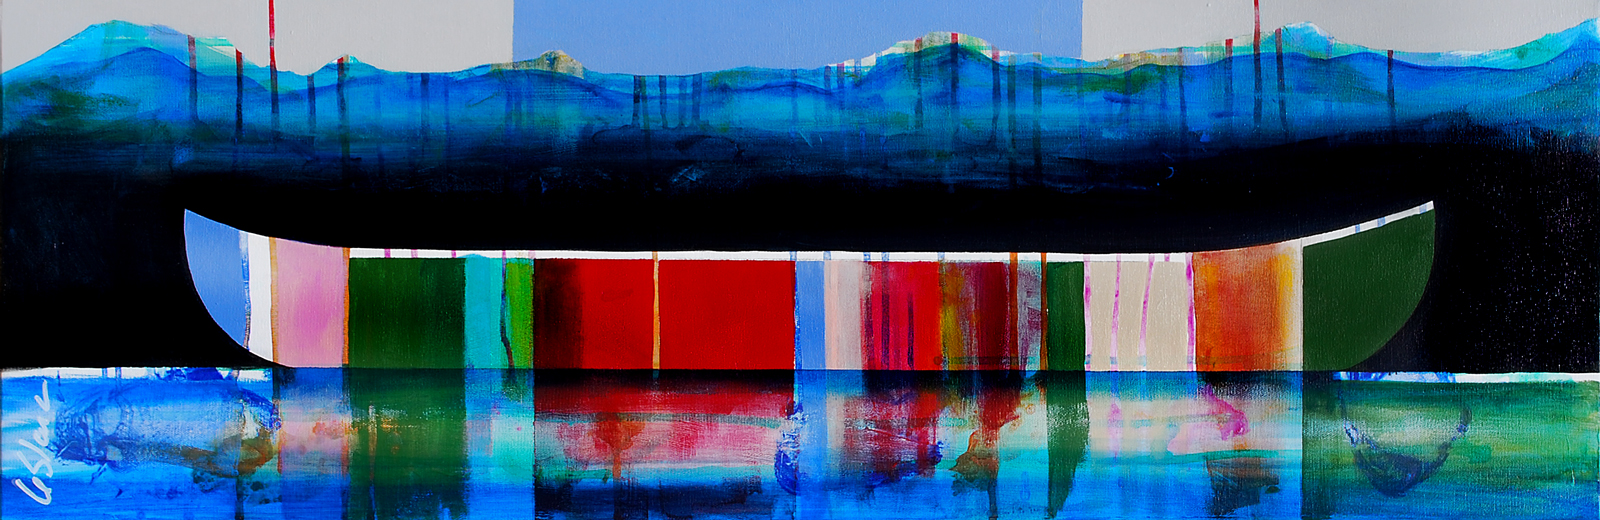 Prélude, mixed media canoe painting by Sylvain Leblanc | Effusion Art Gallery + Cast Glass Studio, Invermere BC